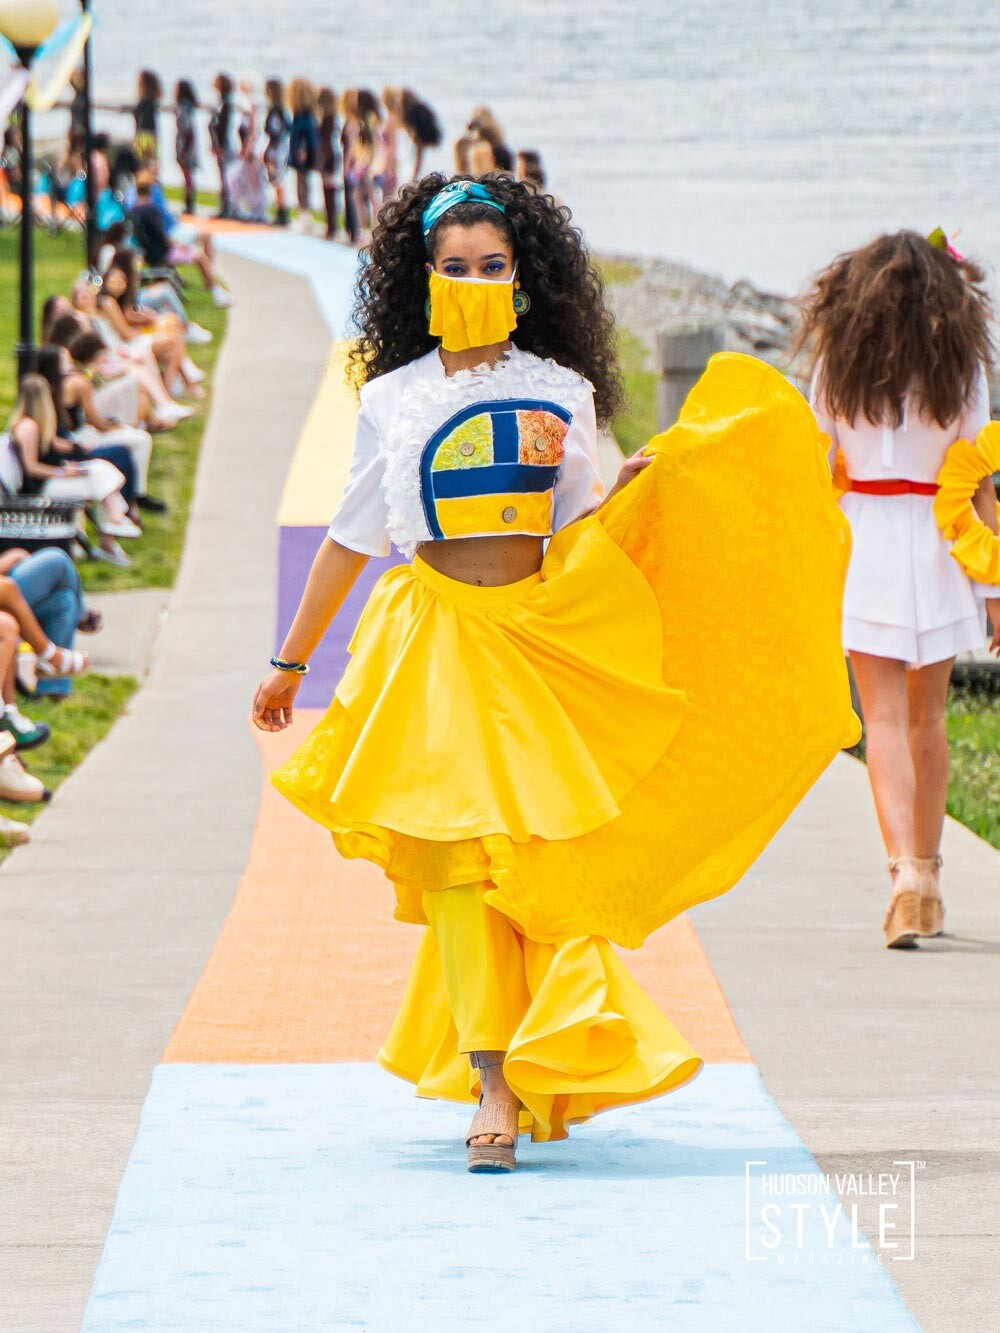 The Runway Revolution: Marist Fashion Students Reinvent The Meaning Of A Fashion Show At The 35th Annual Silver Needle Runway